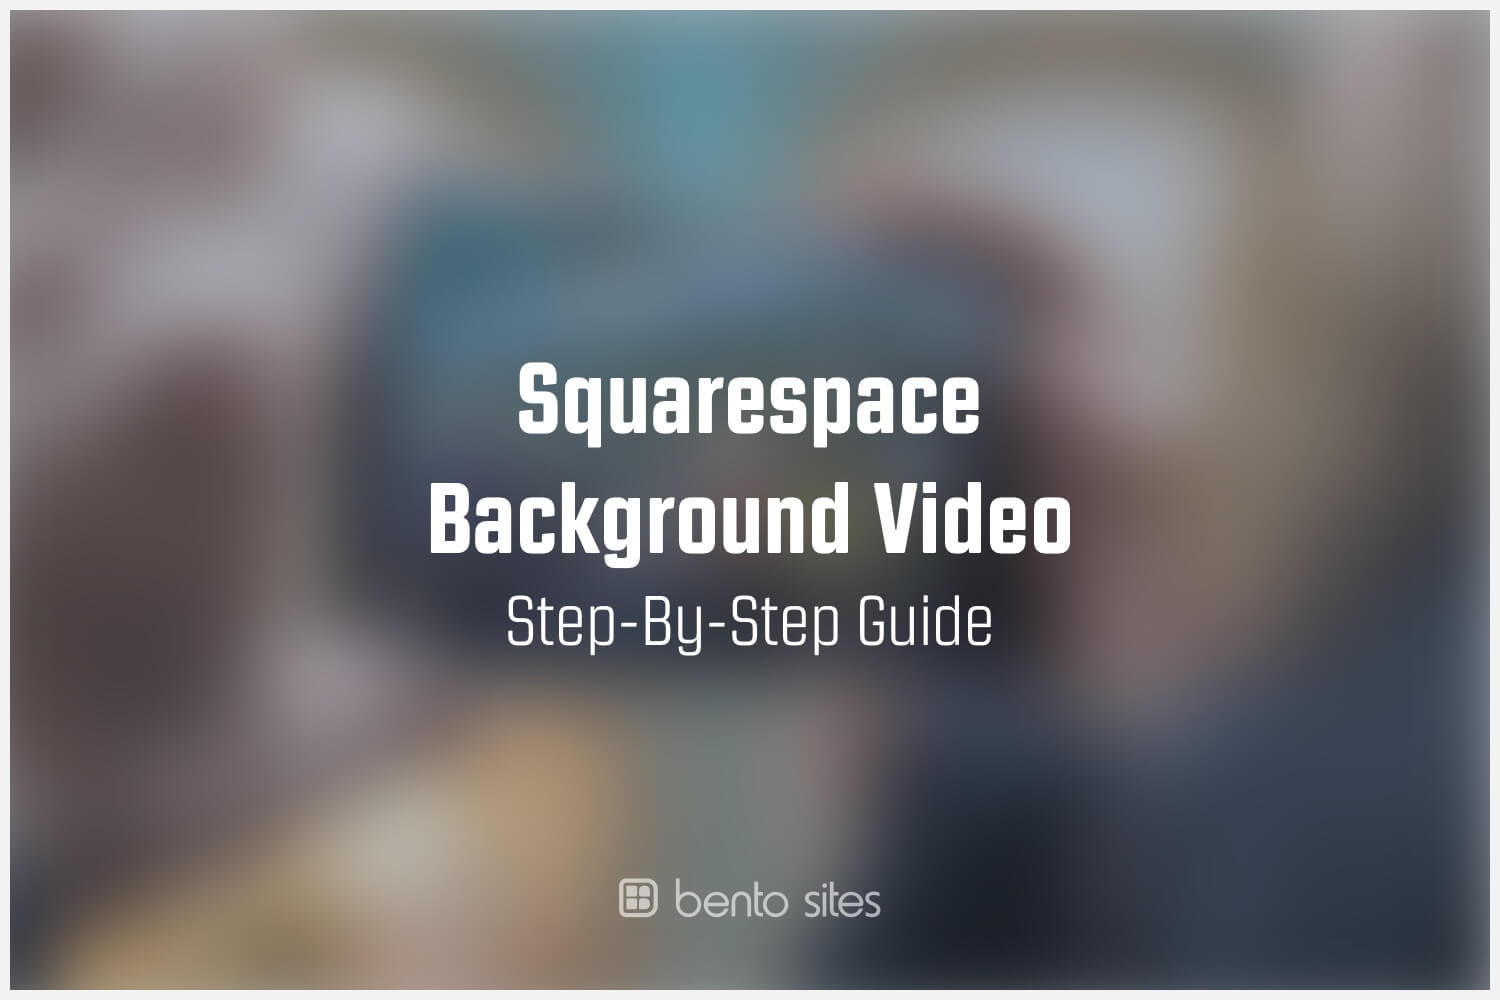 squarespace-background-video-guide